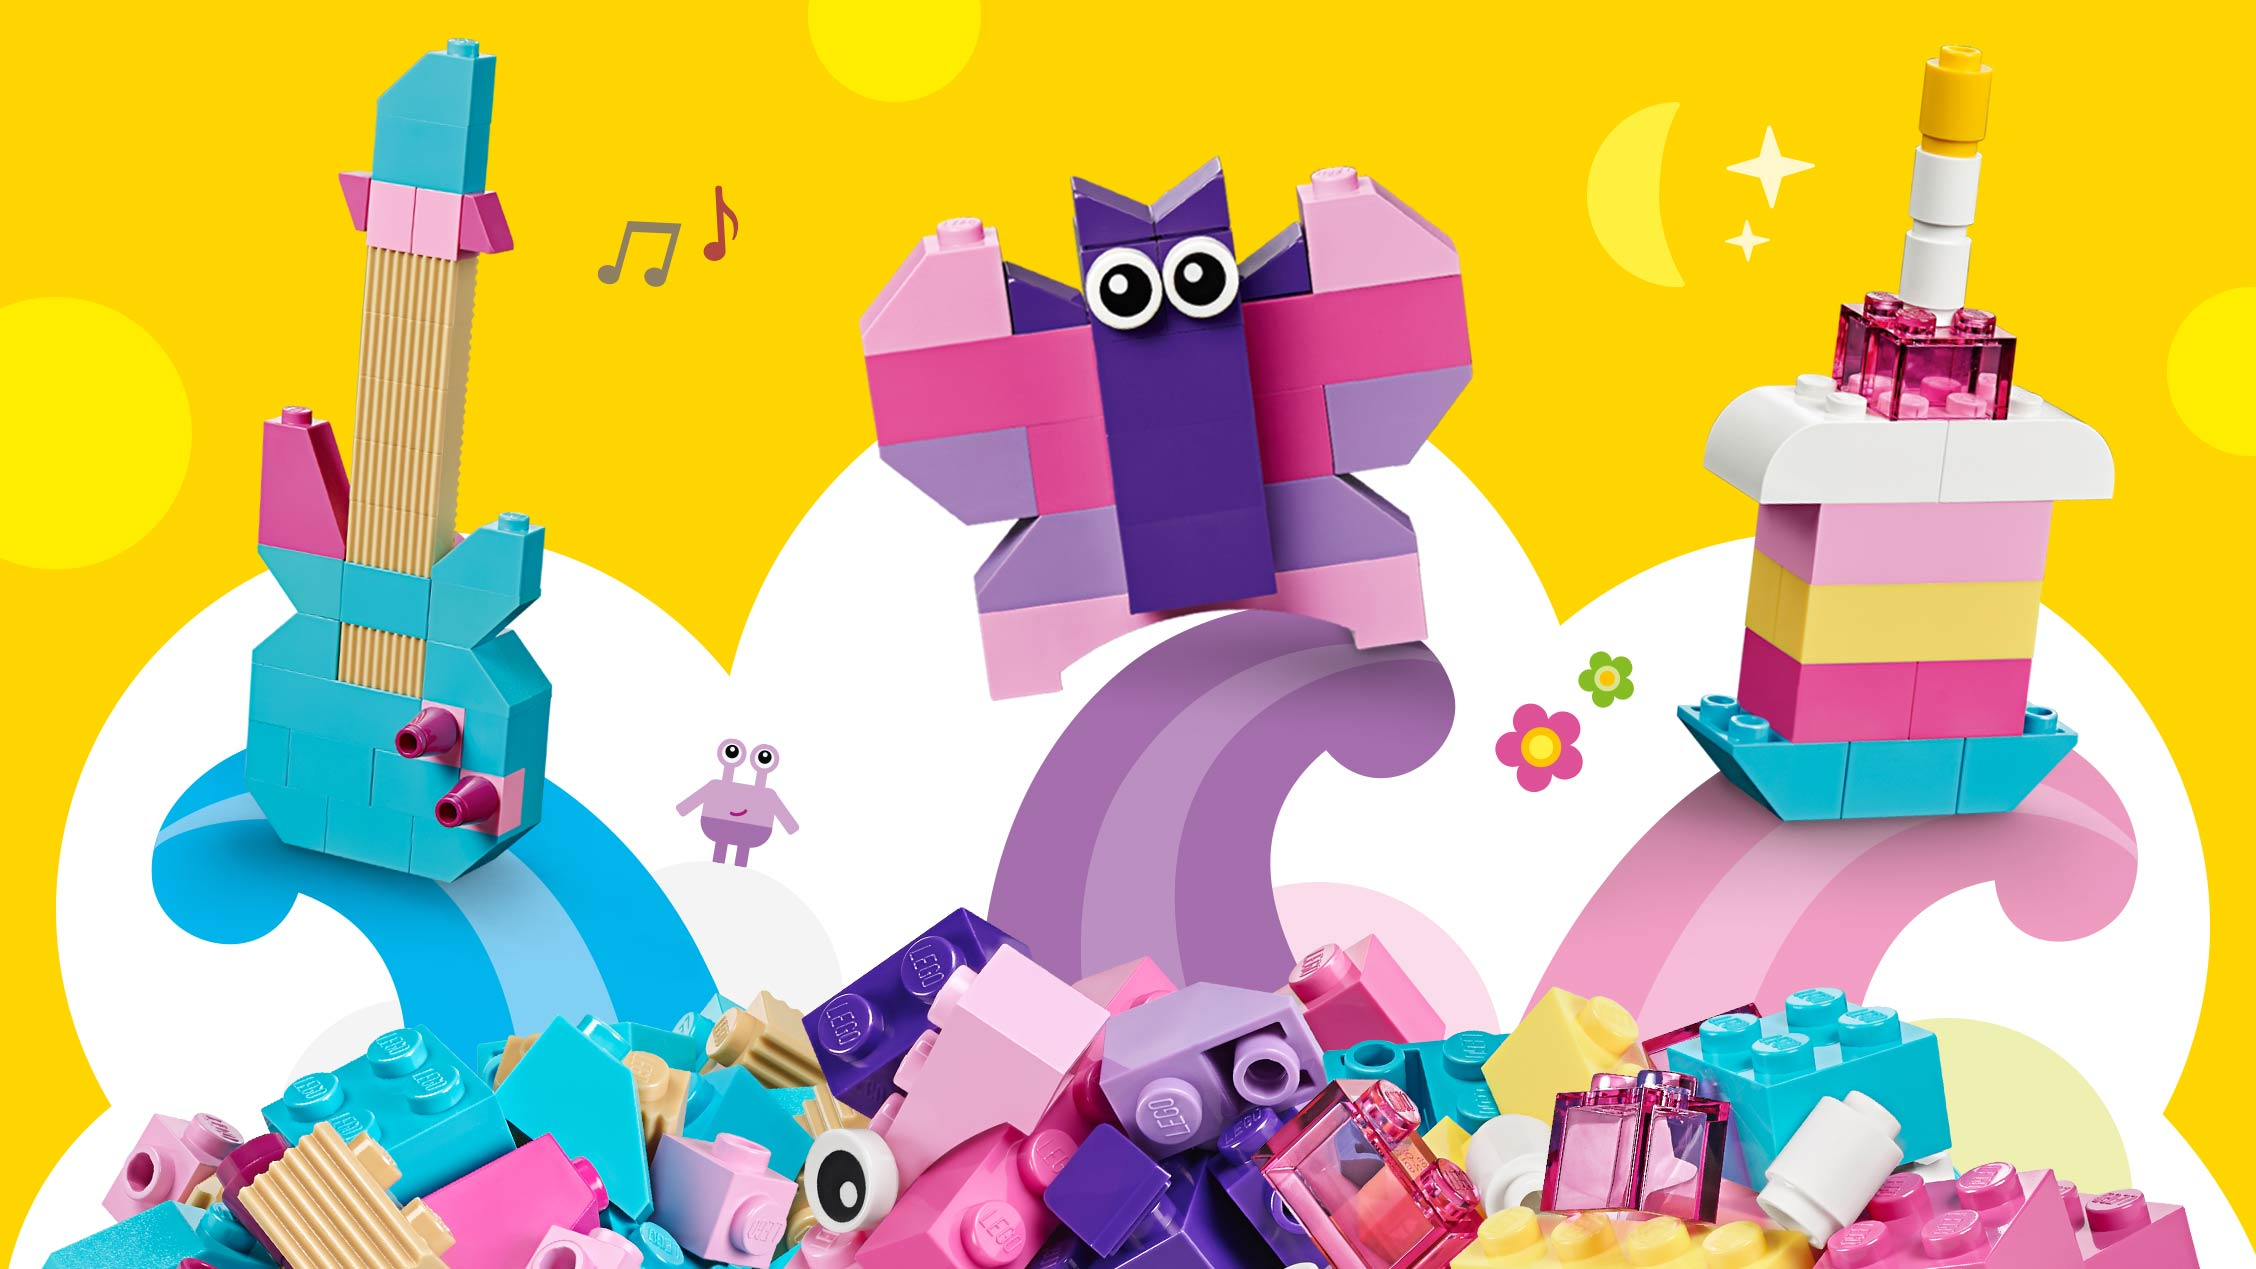 LEGO Classic - 10694 - Use a mix of blue, purple and pink bricks to build a guitar, butterfly or a birthday cake with a candle.